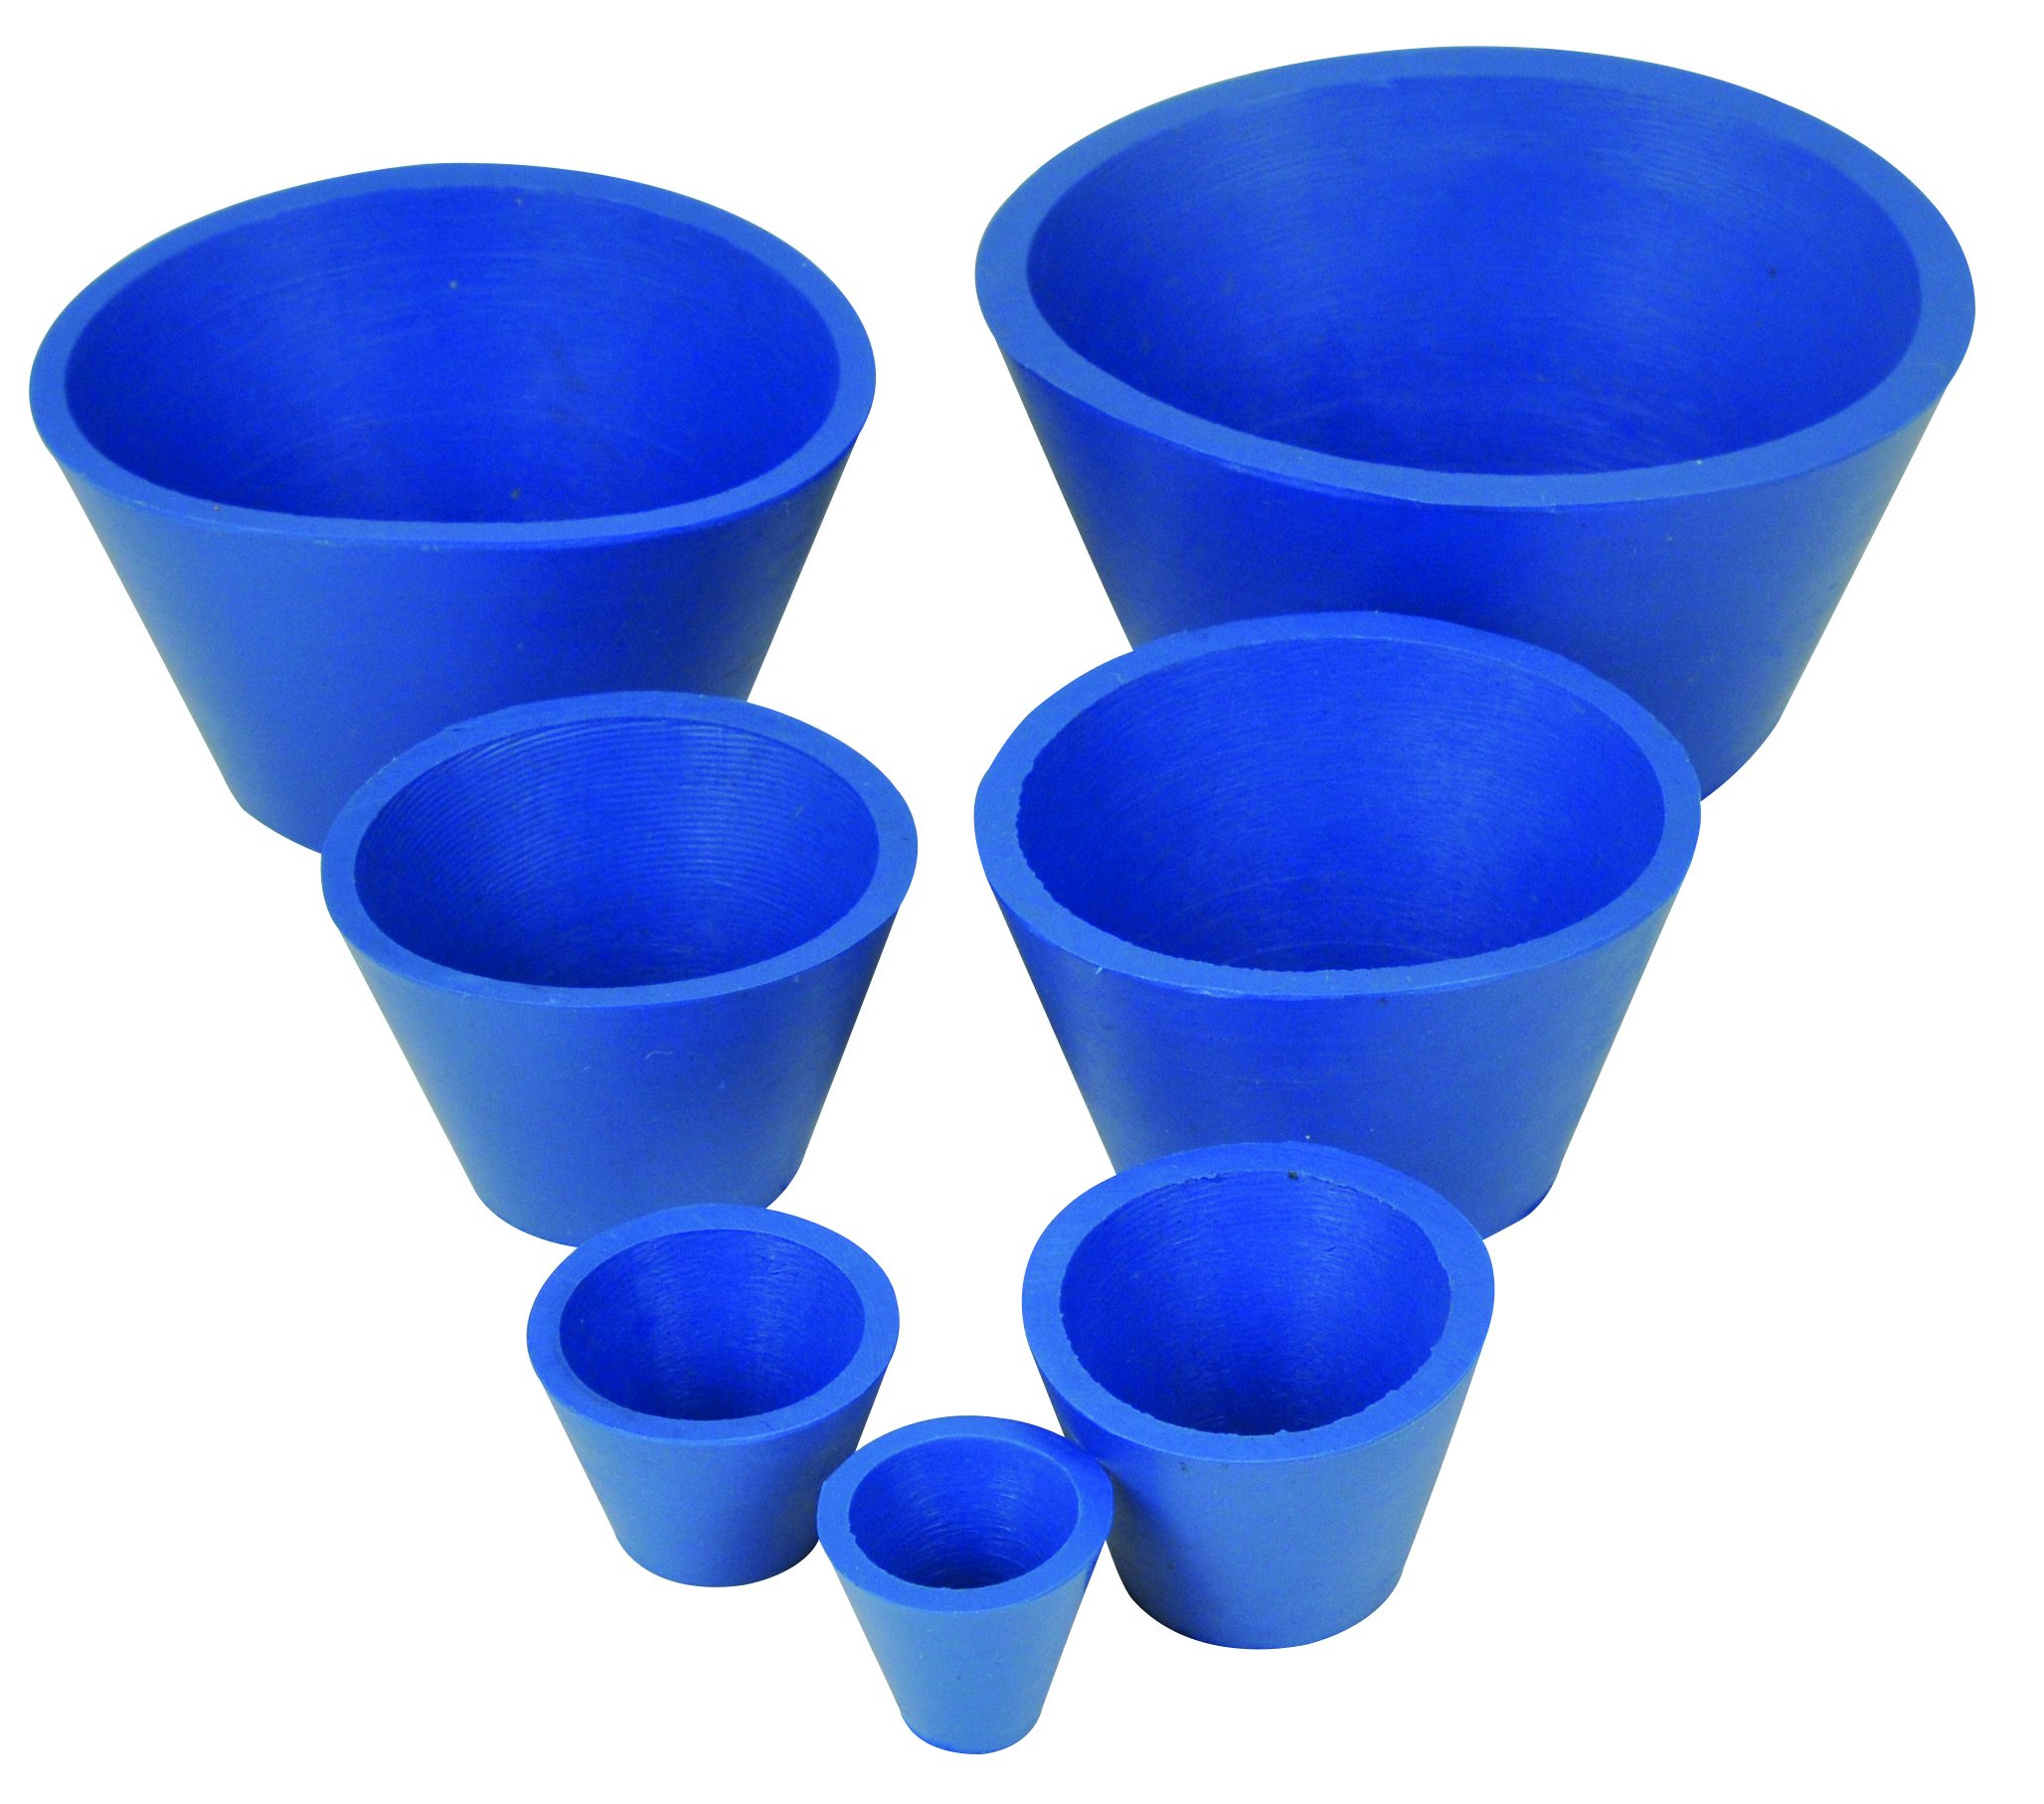 Rubber Filter Adapter Cones for Buchner Funnels - Set of 7 by EISCO (Image #1)